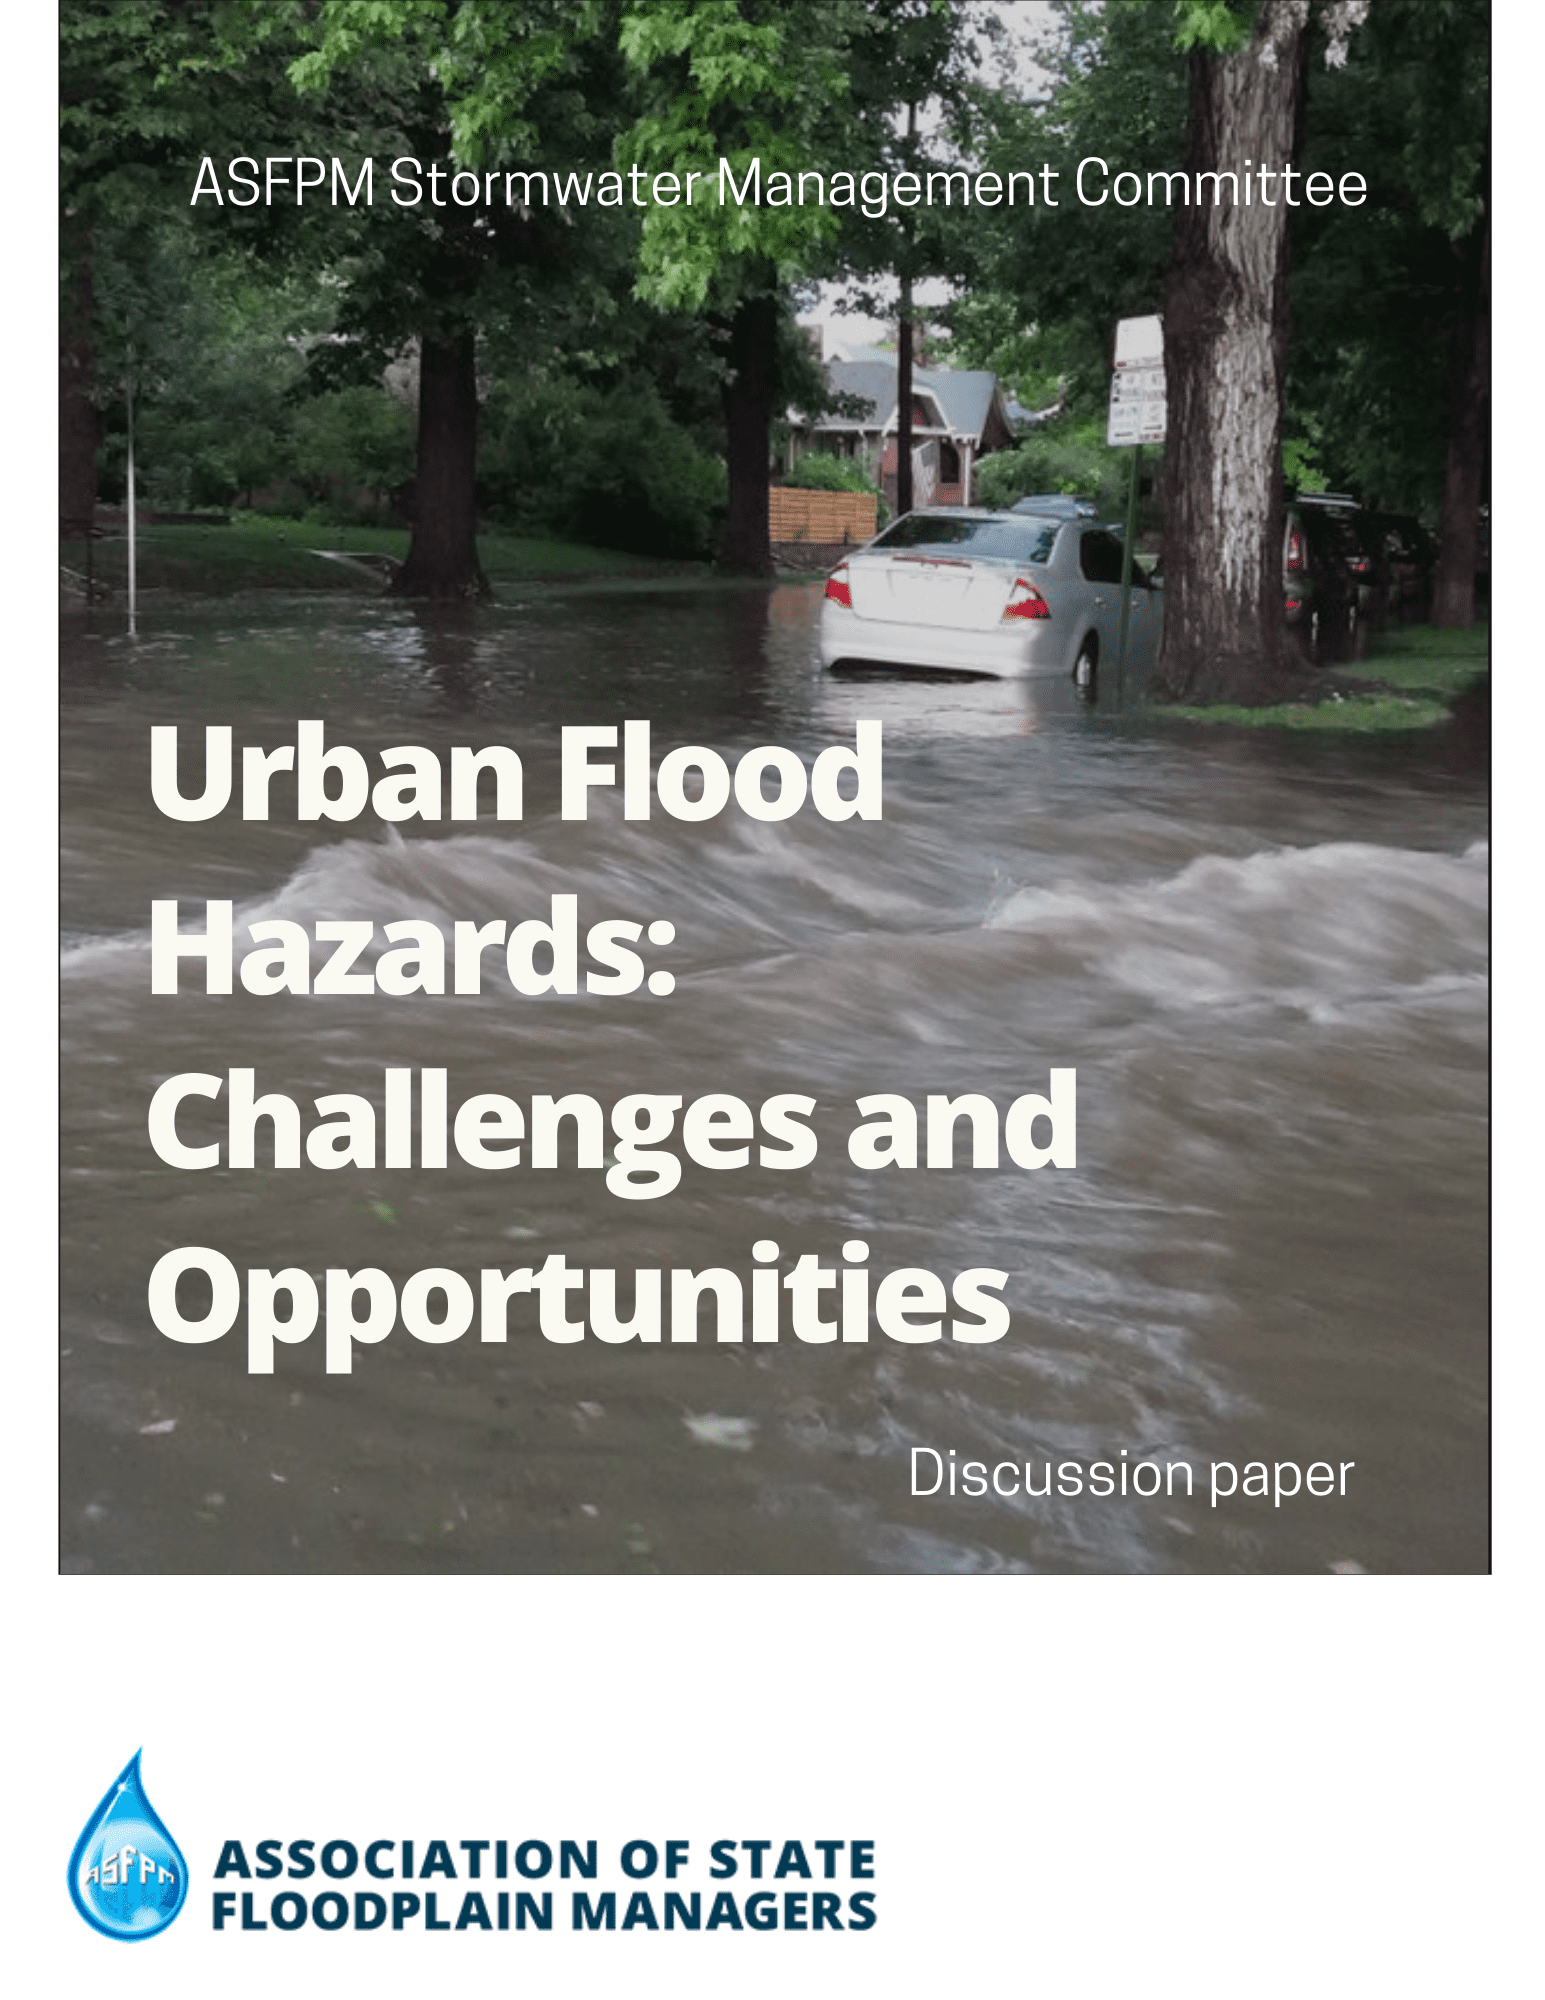 Urban Flood Hazards: Challenges and Opportunities Discussion Paper Cover